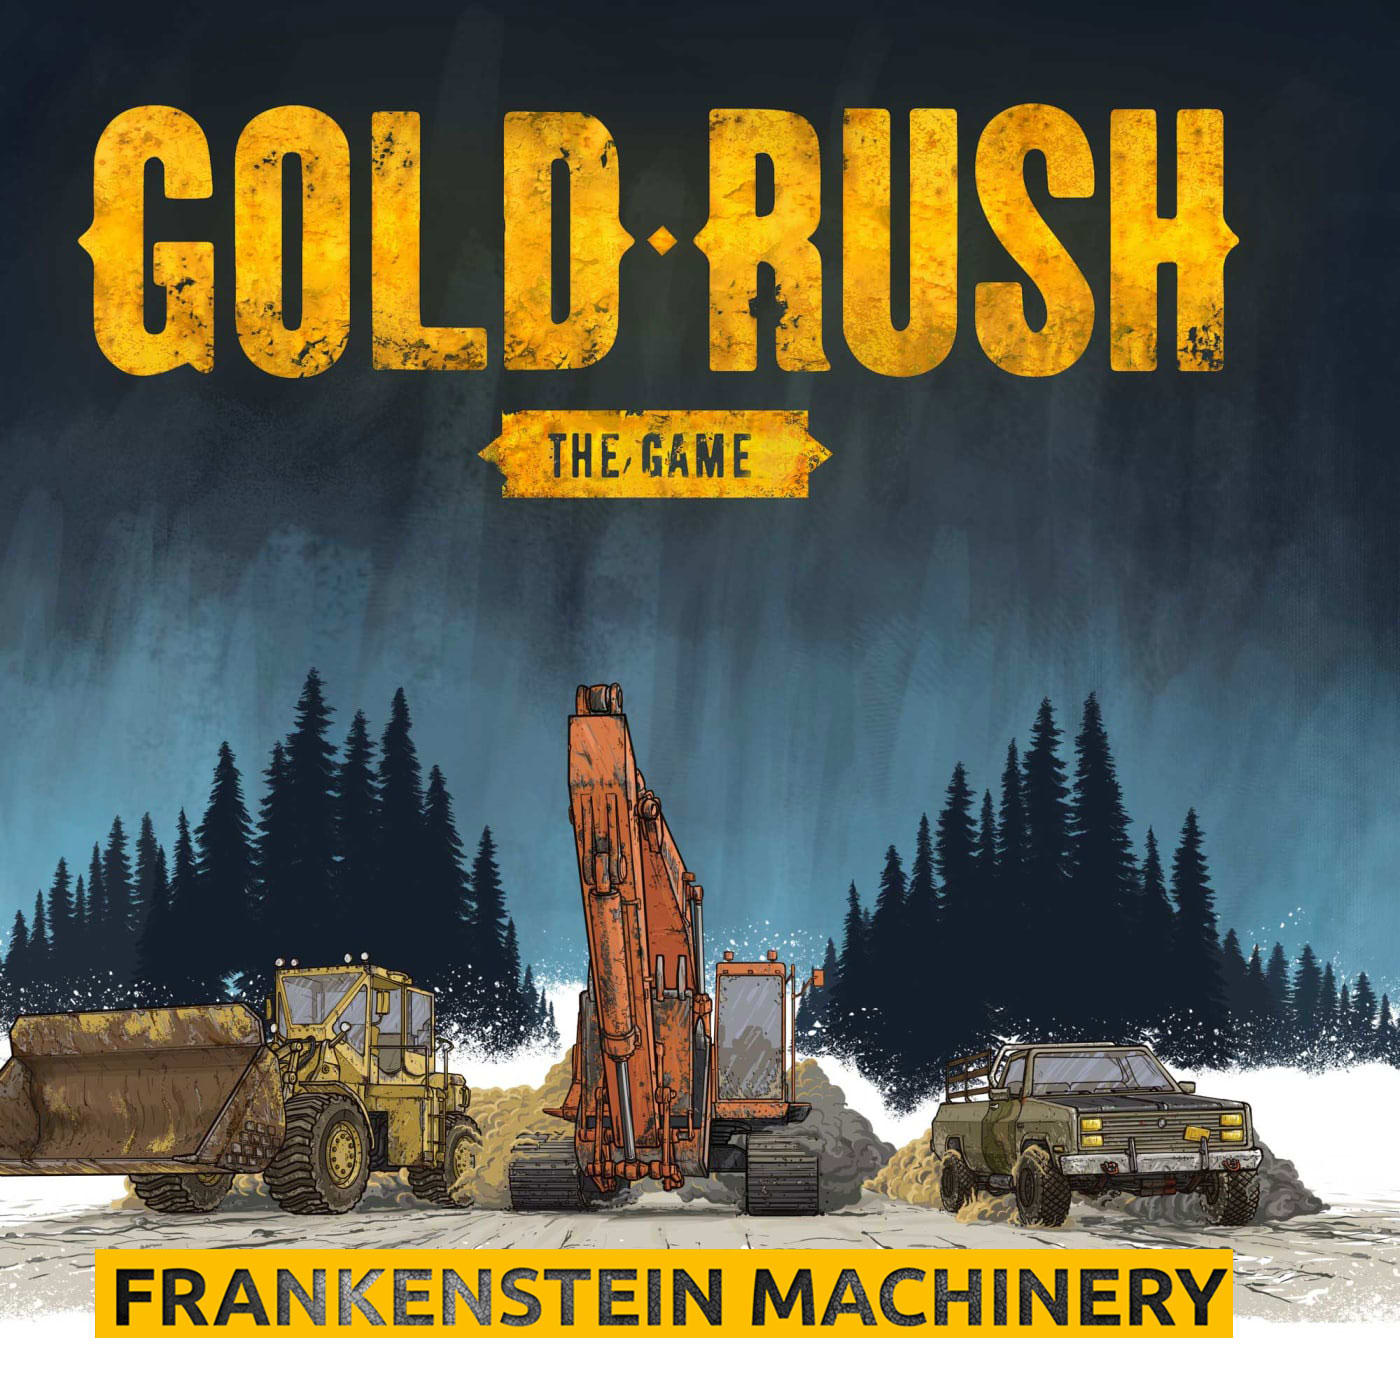 california gold rush game full version free download